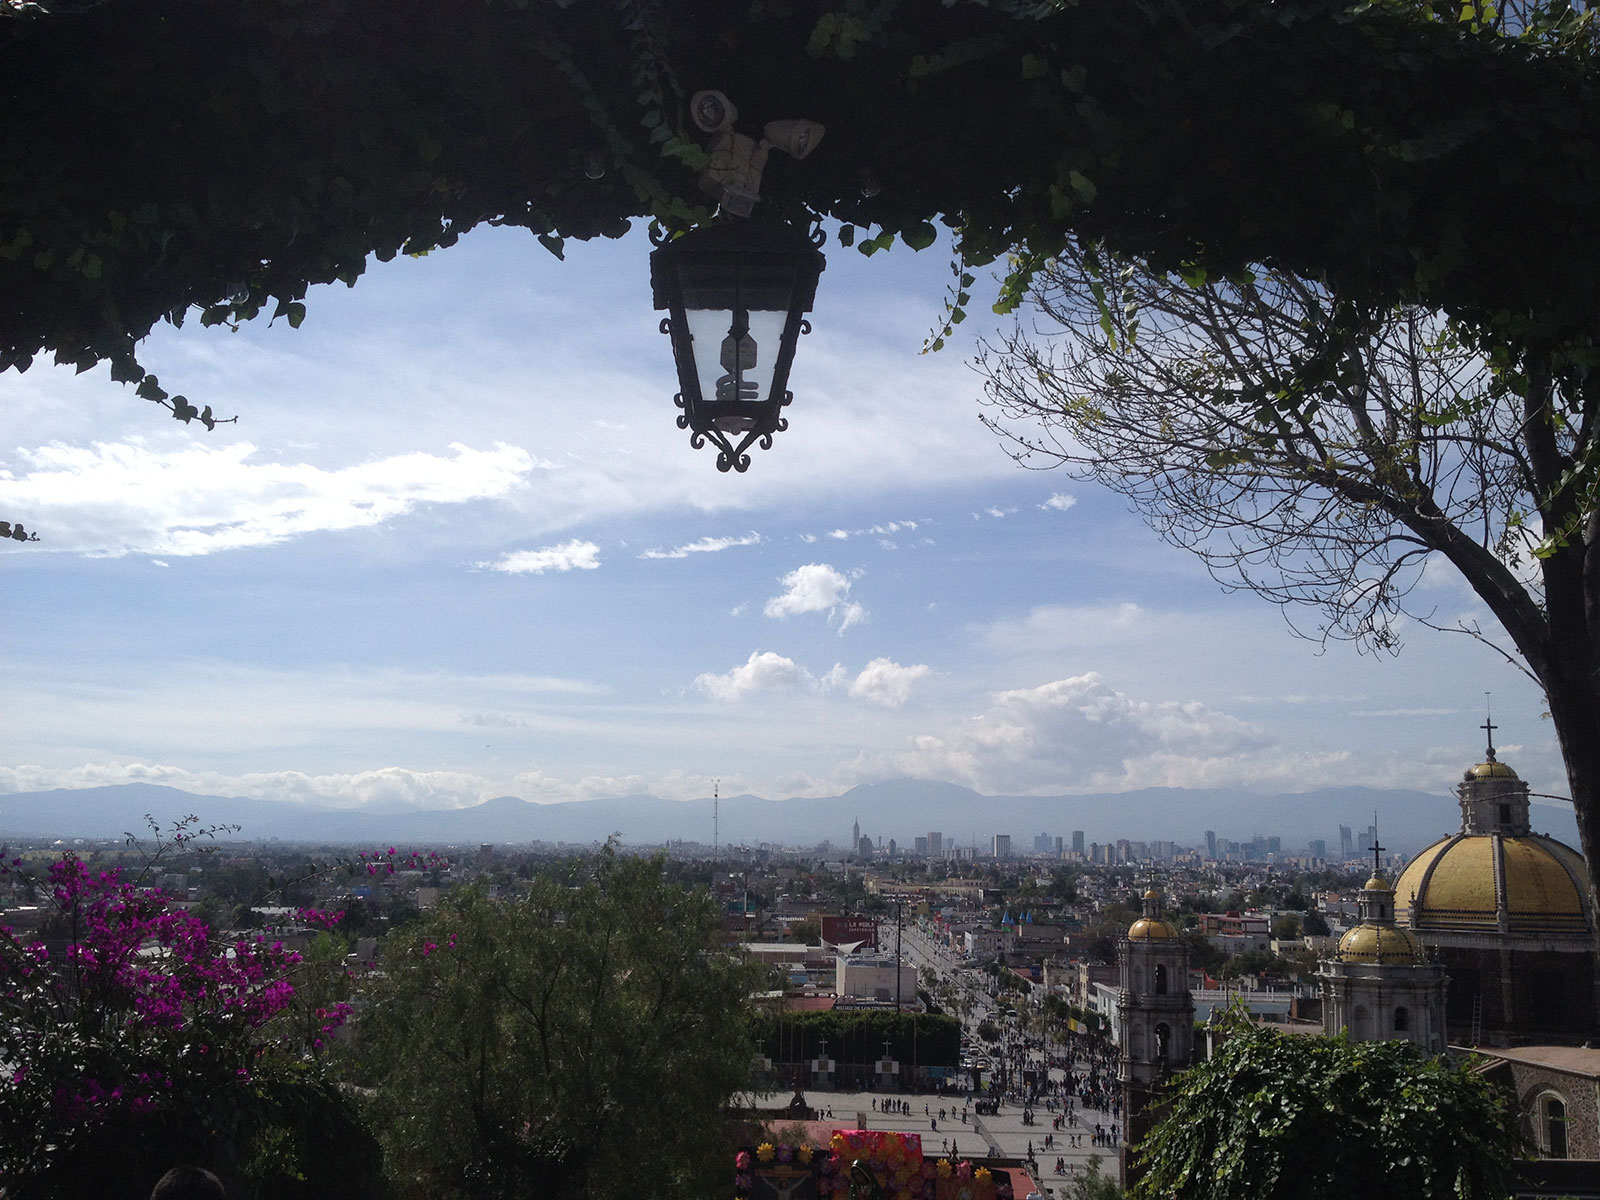 The view from the old Basilica de Guadalupe.